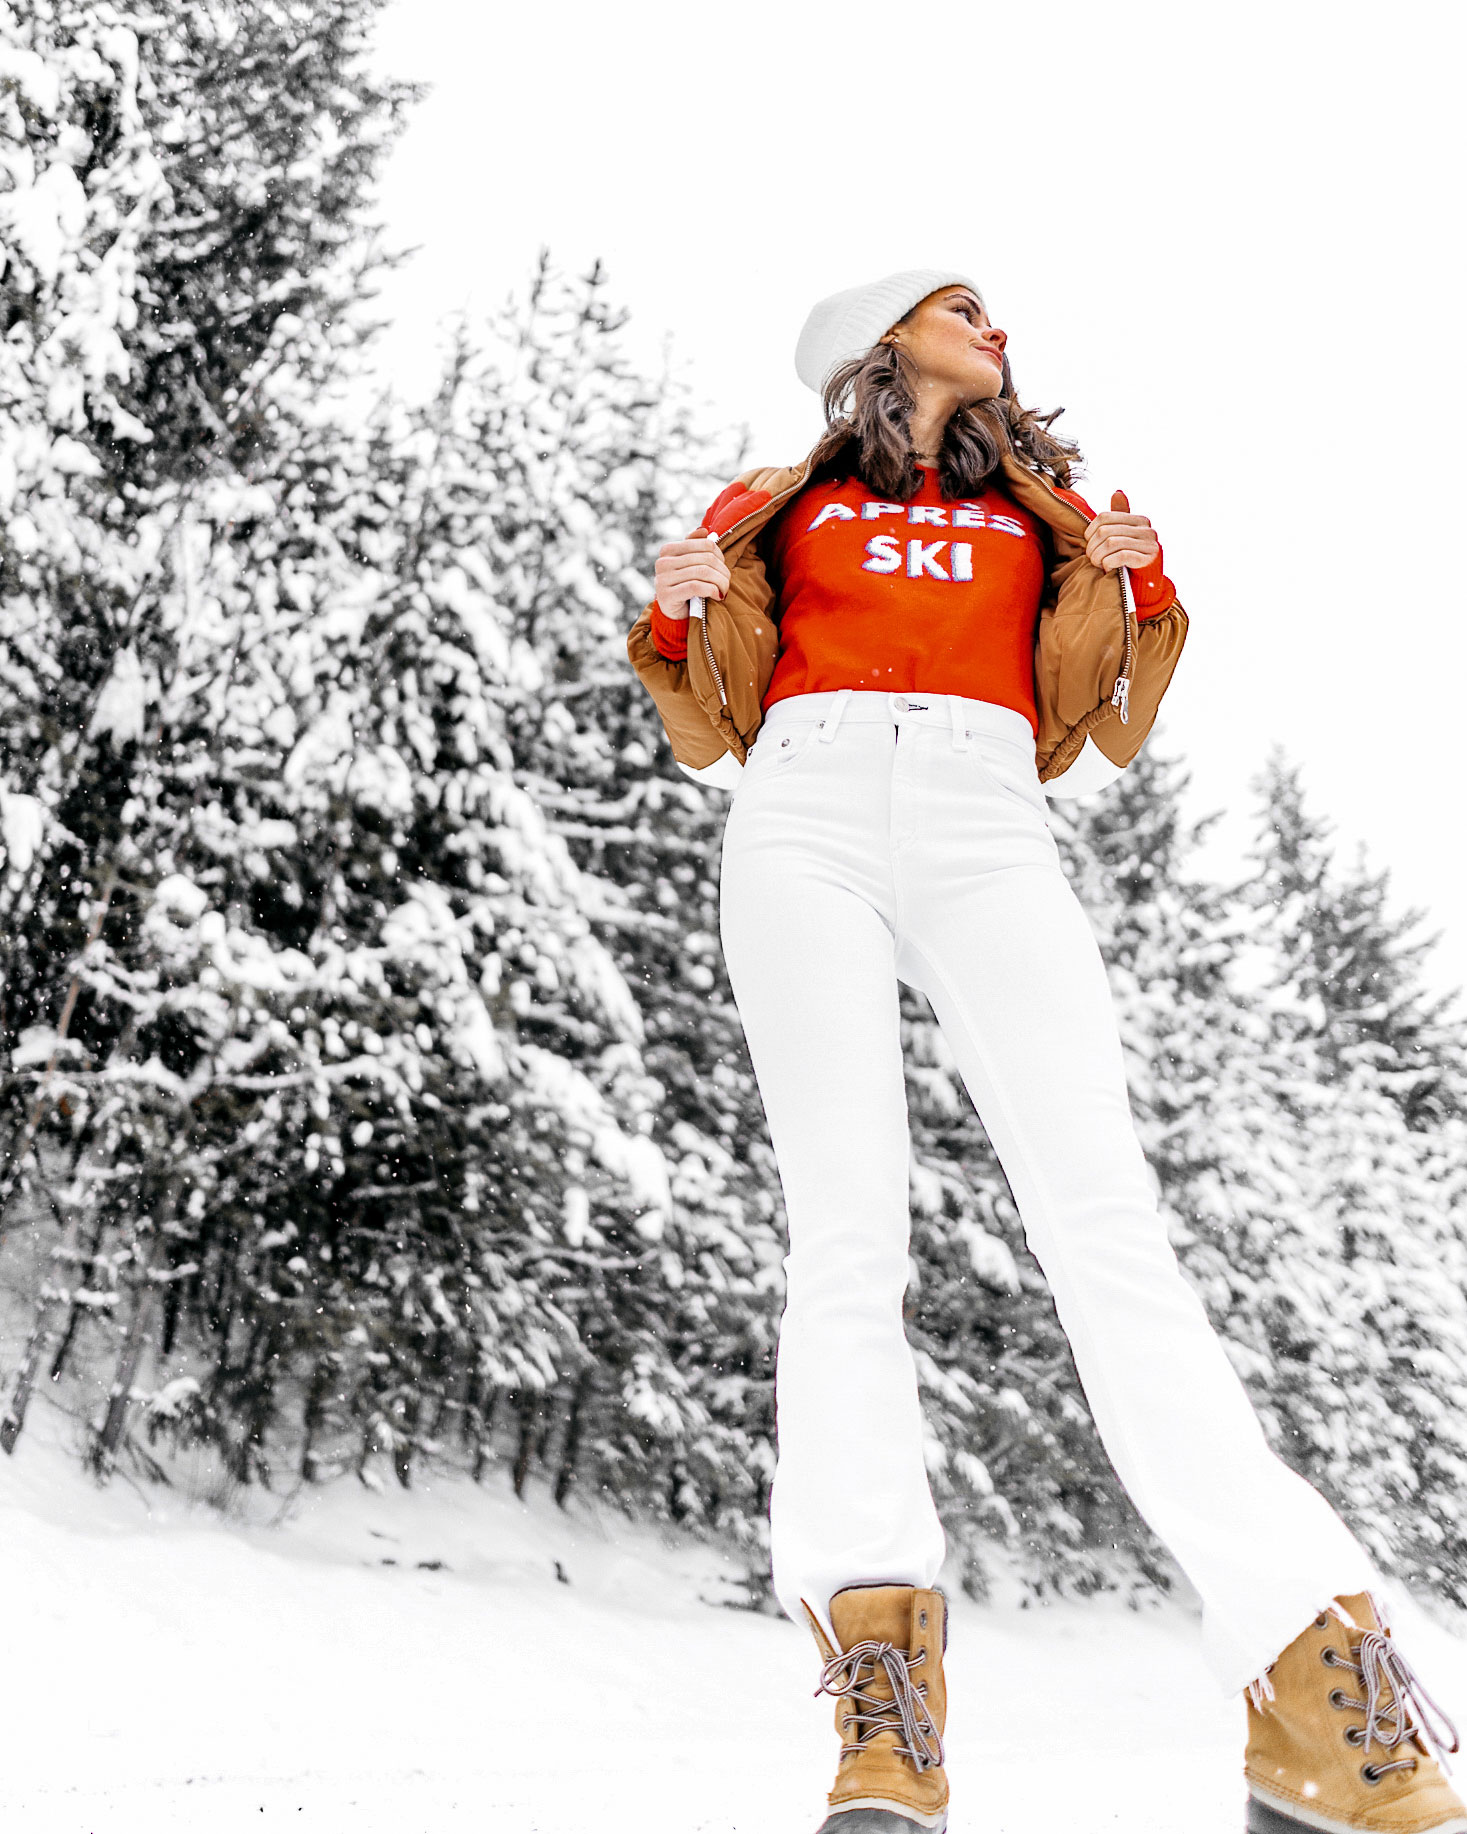 apres-ski-sweater-striped-vintage-puffer-coat-winter-snow-outfit-whistler-4.jpg